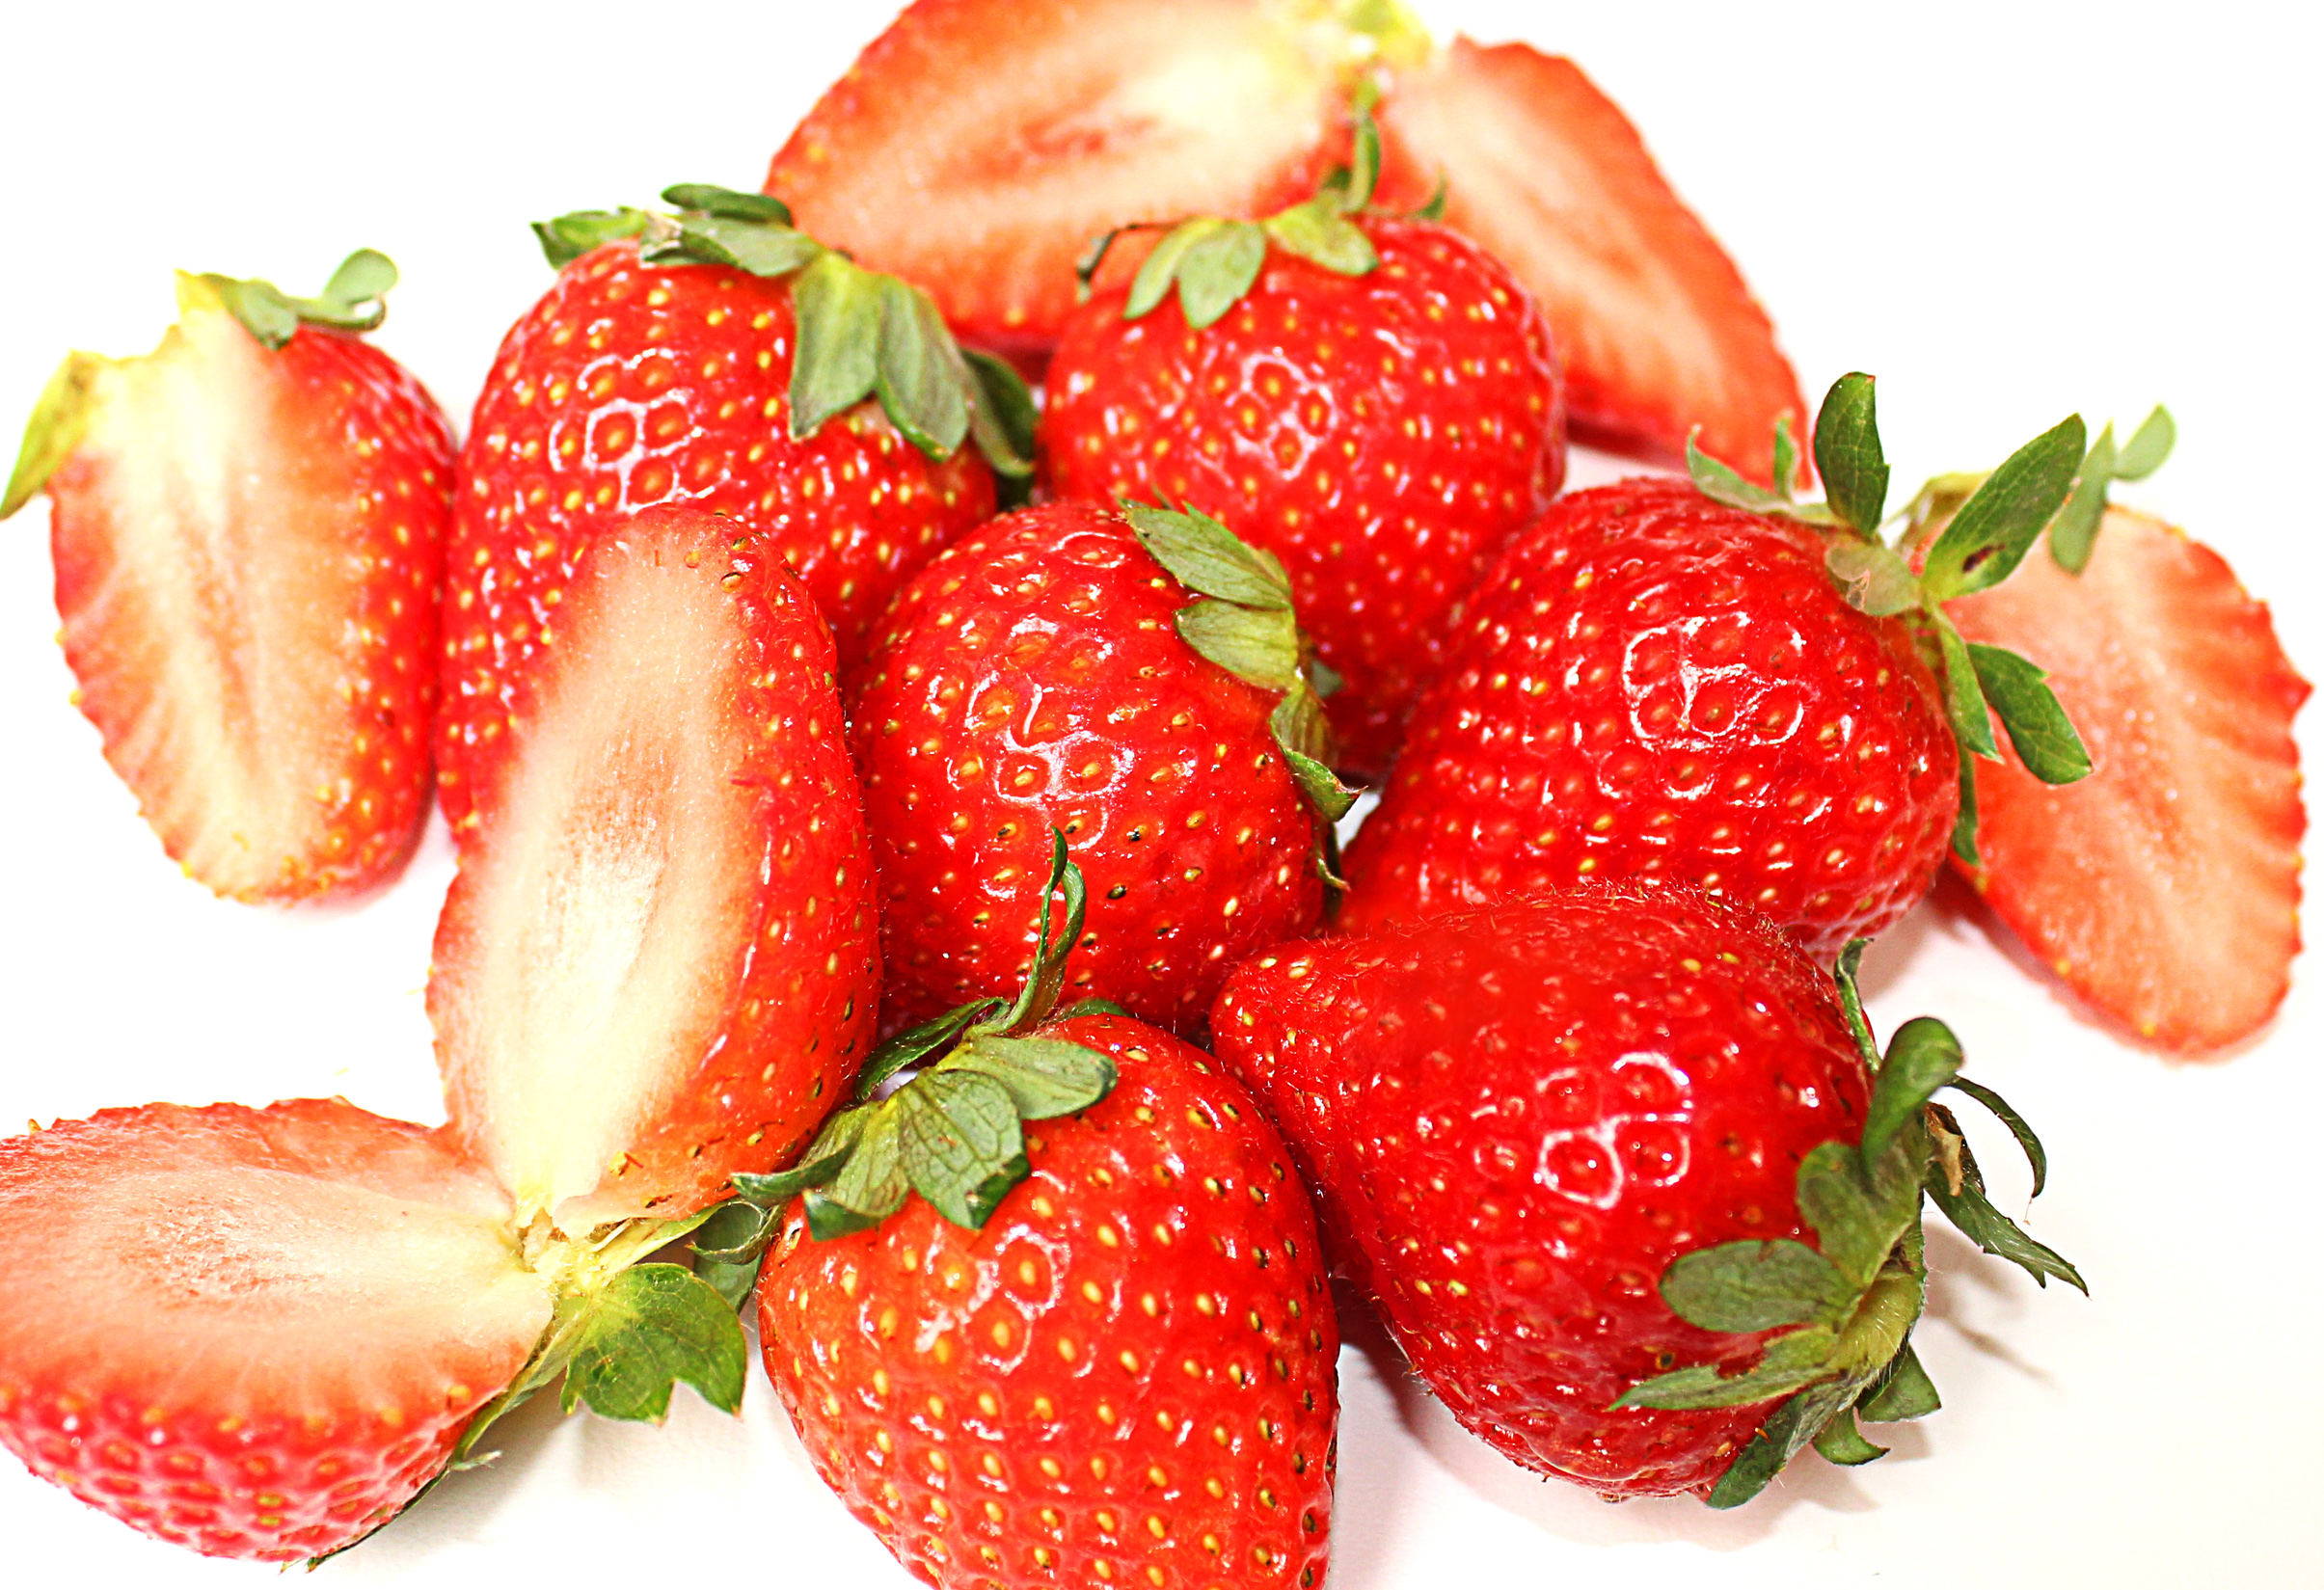 Close-up of red sweet strawberry fruits photo